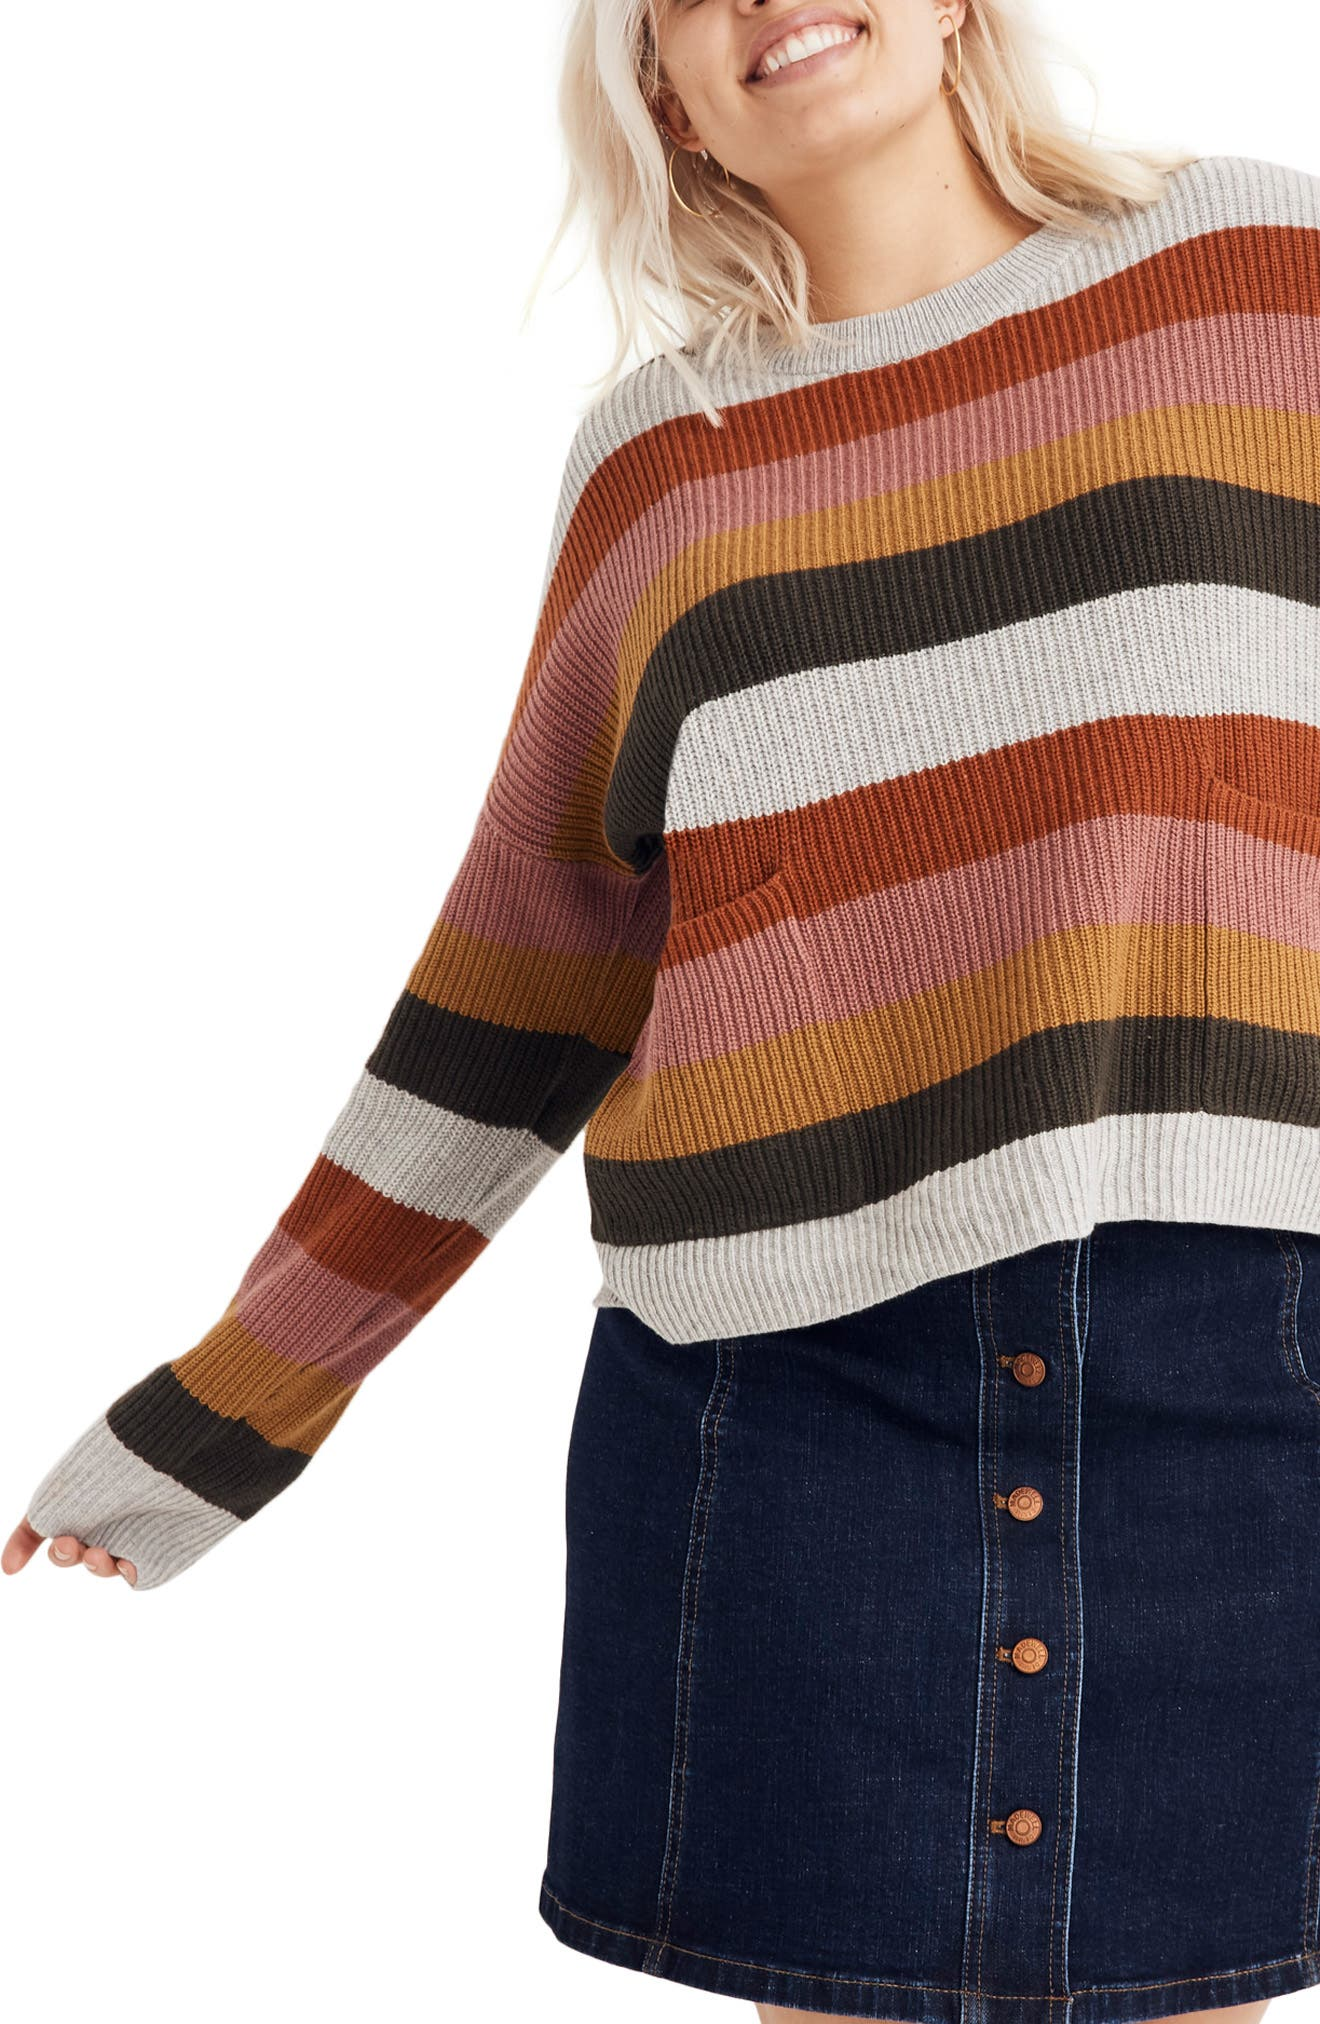 Patch Pocket Pullover Sweater,                         Main,                         color, 900